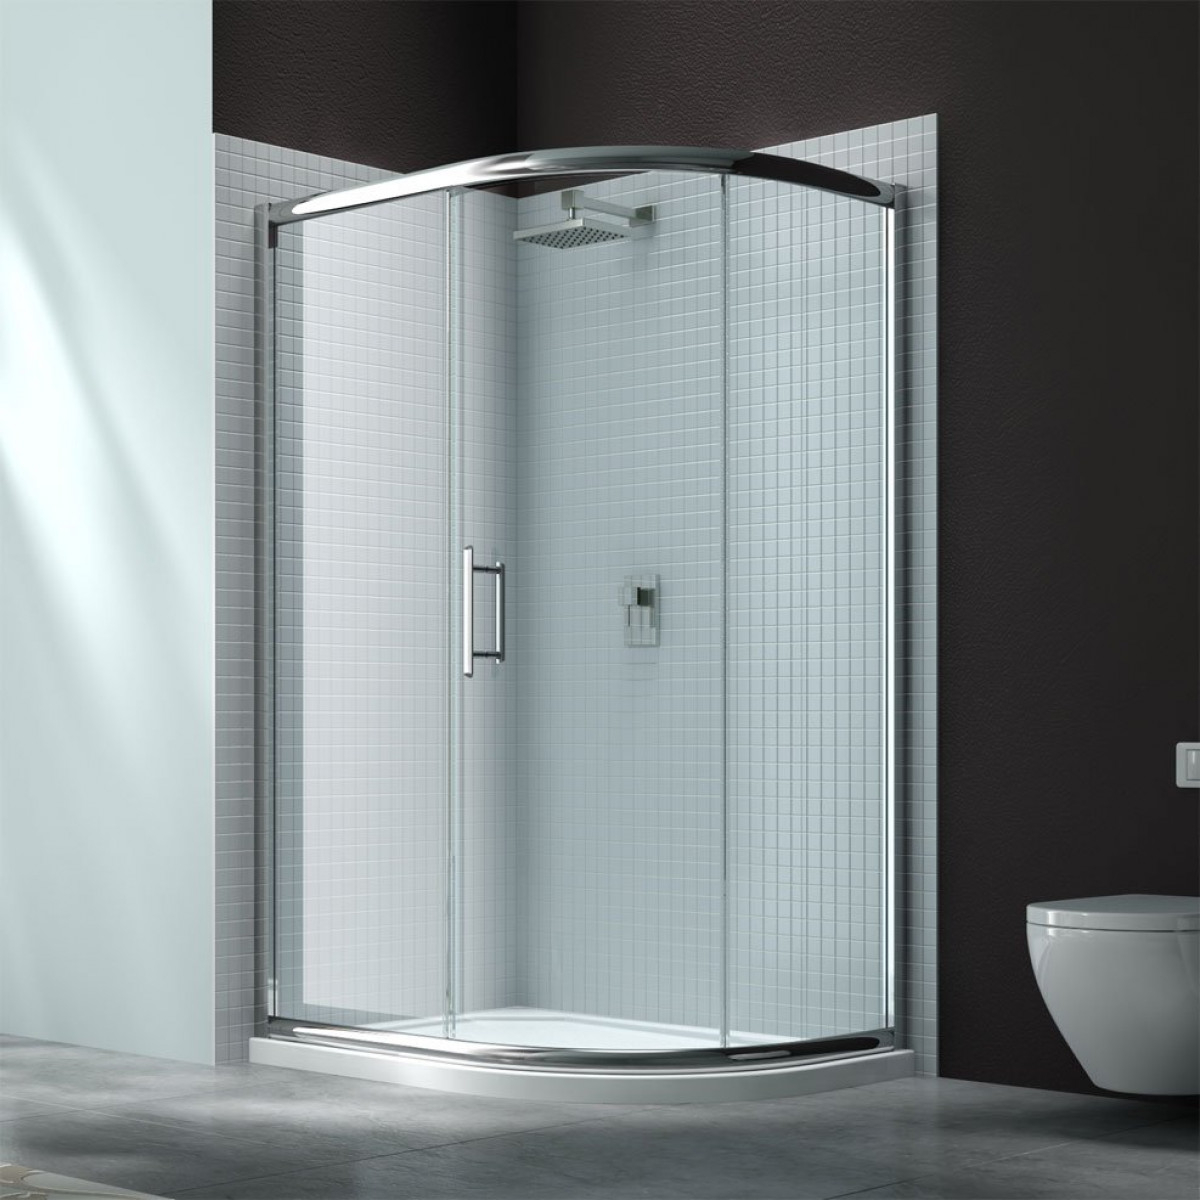 Merlyn 6 series 1200 x 900 1 door offset quadrant shower for 1200 door